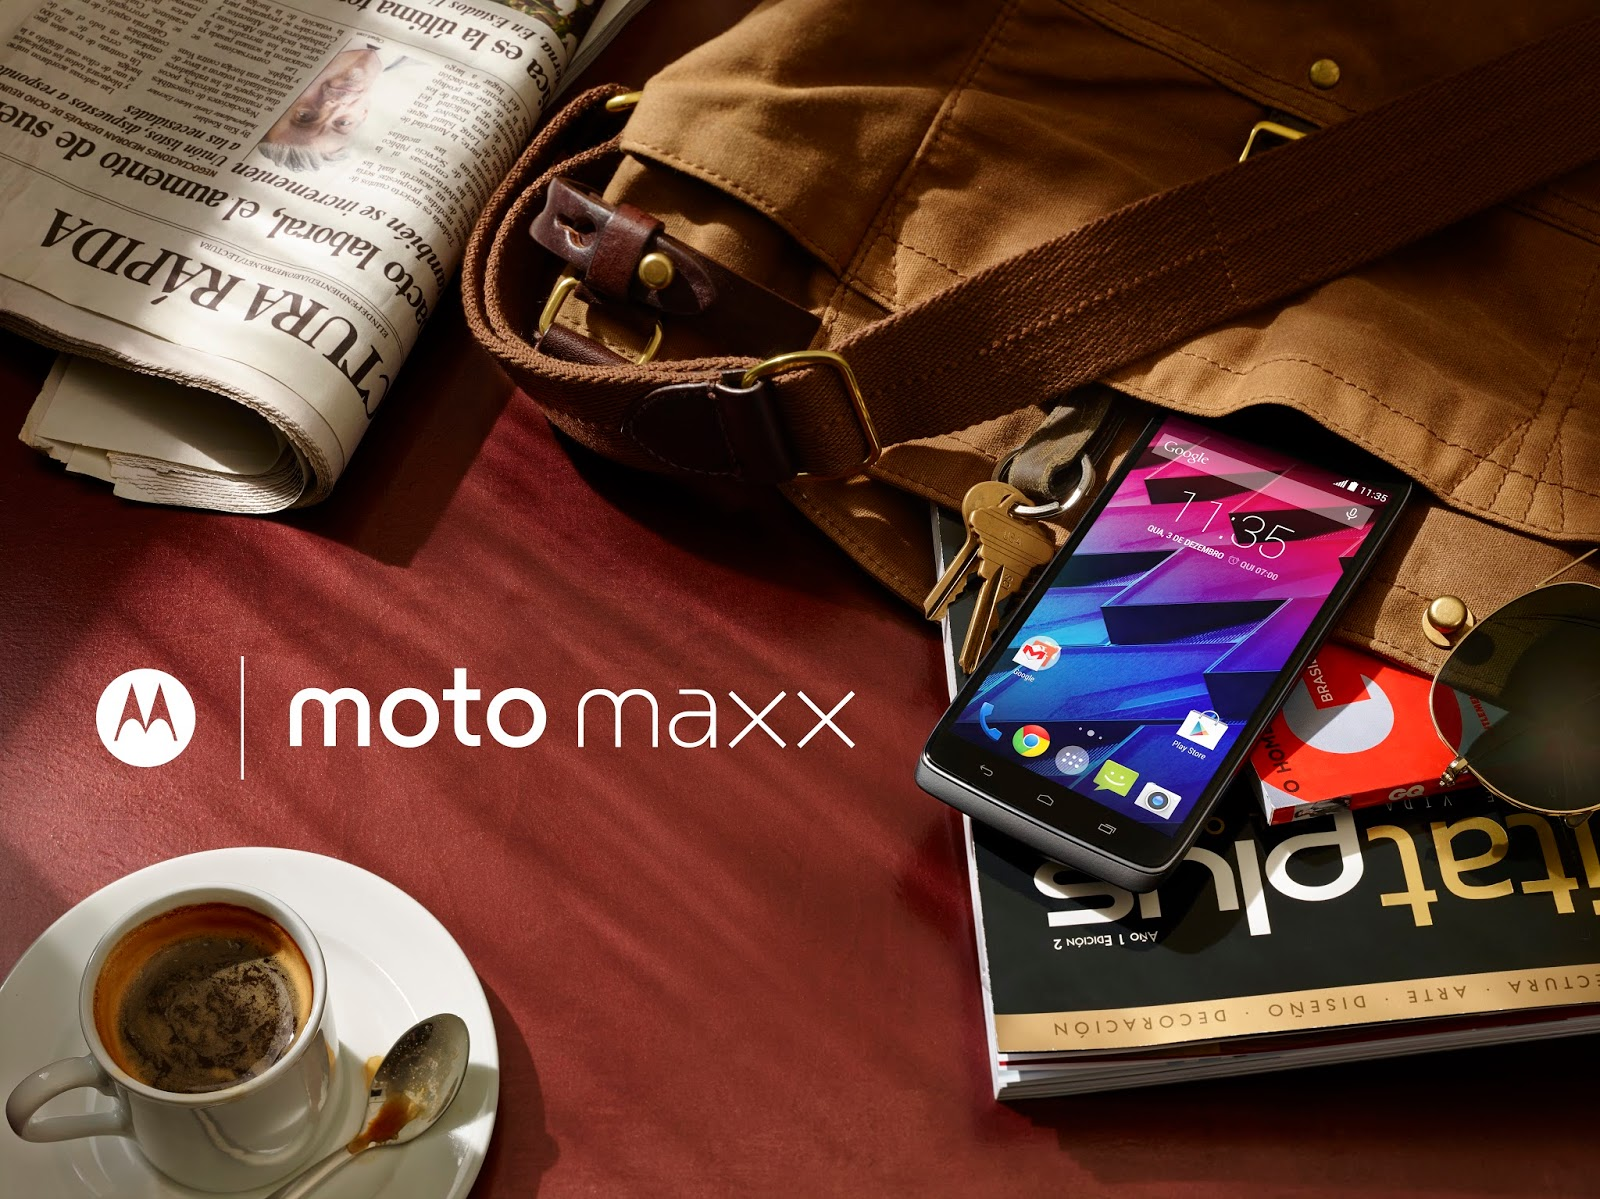 Moto Maxx: Choose to live life unplugged <h3> Coming to Brazil, Mexico and other Latin American countries soon </h3>